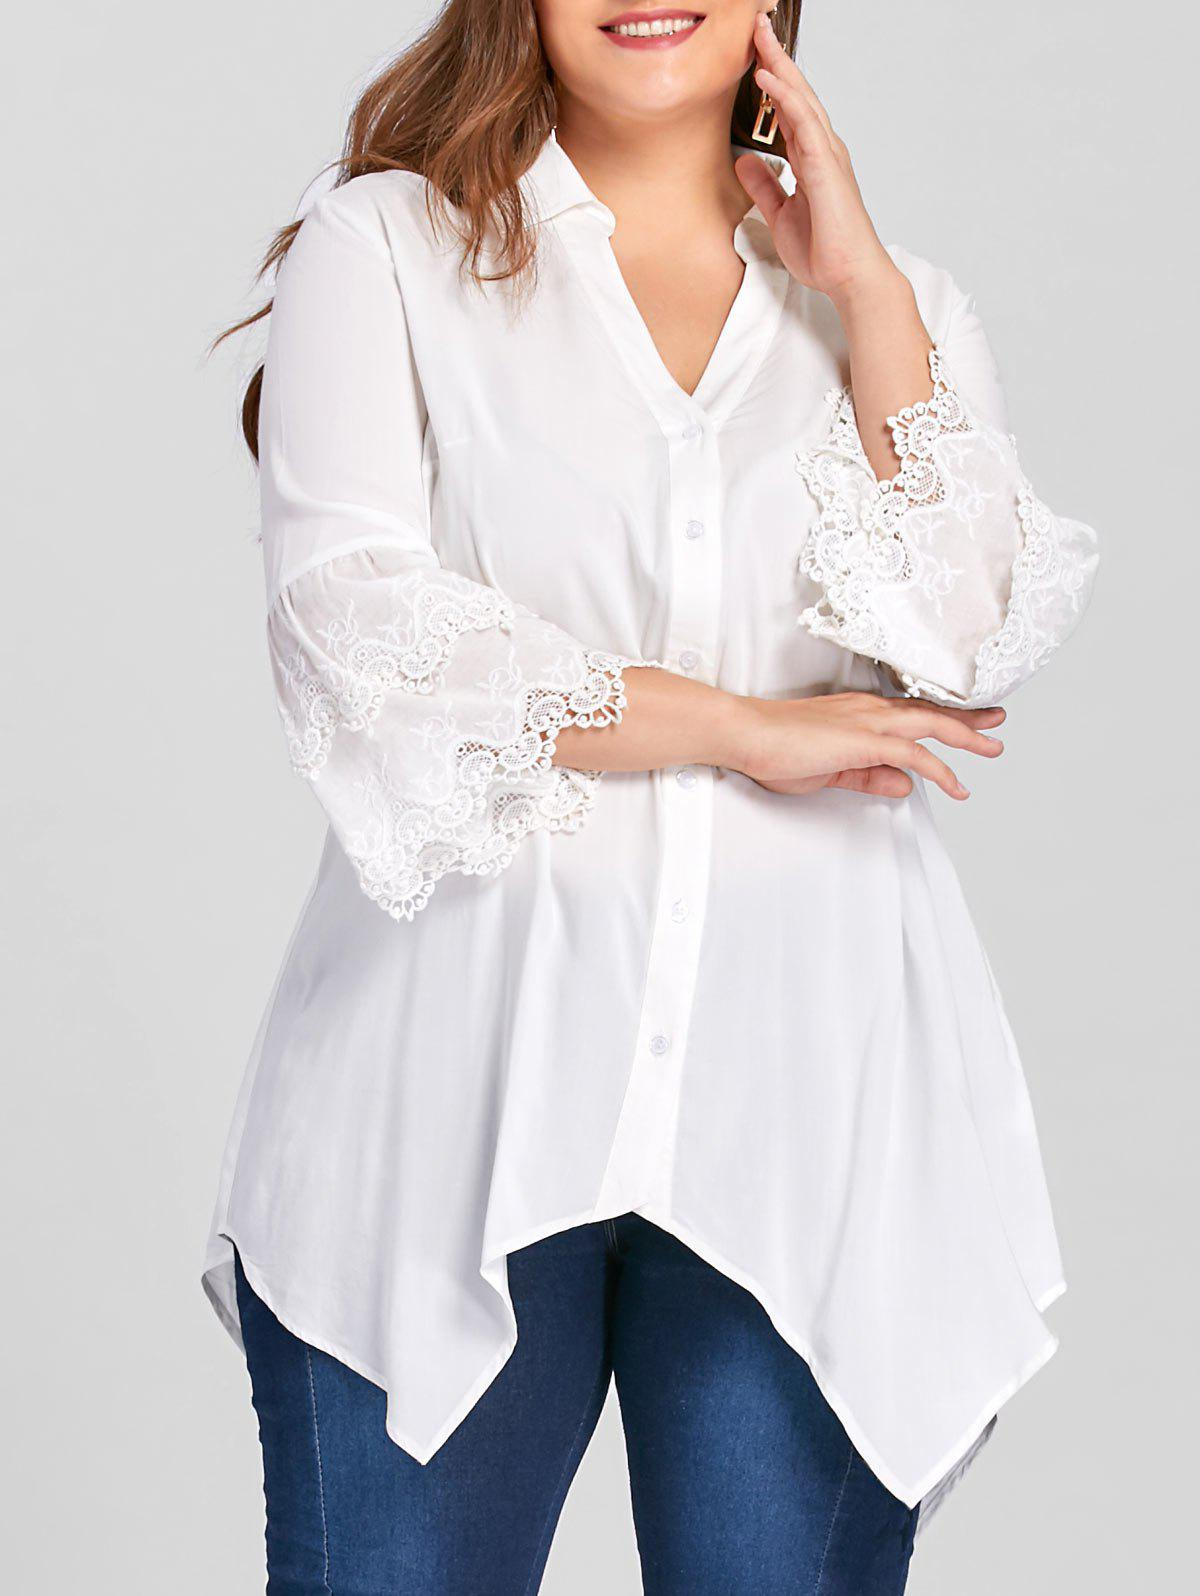 Plus Size Layered Flare Sleeve Tunic BlouseWOMEN<br><br>Size: 3XL; Color: WHITE; Material: Rayon; Shirt Length: Long; Sleeve Length: Full; Collar: Turn-down Collar; Style: Casual; Season: Fall,Spring; Embellishment: Embroidery; Pattern Type: Solid; Weight: 0.2700kg; Package Contents: 1 x Blouse;